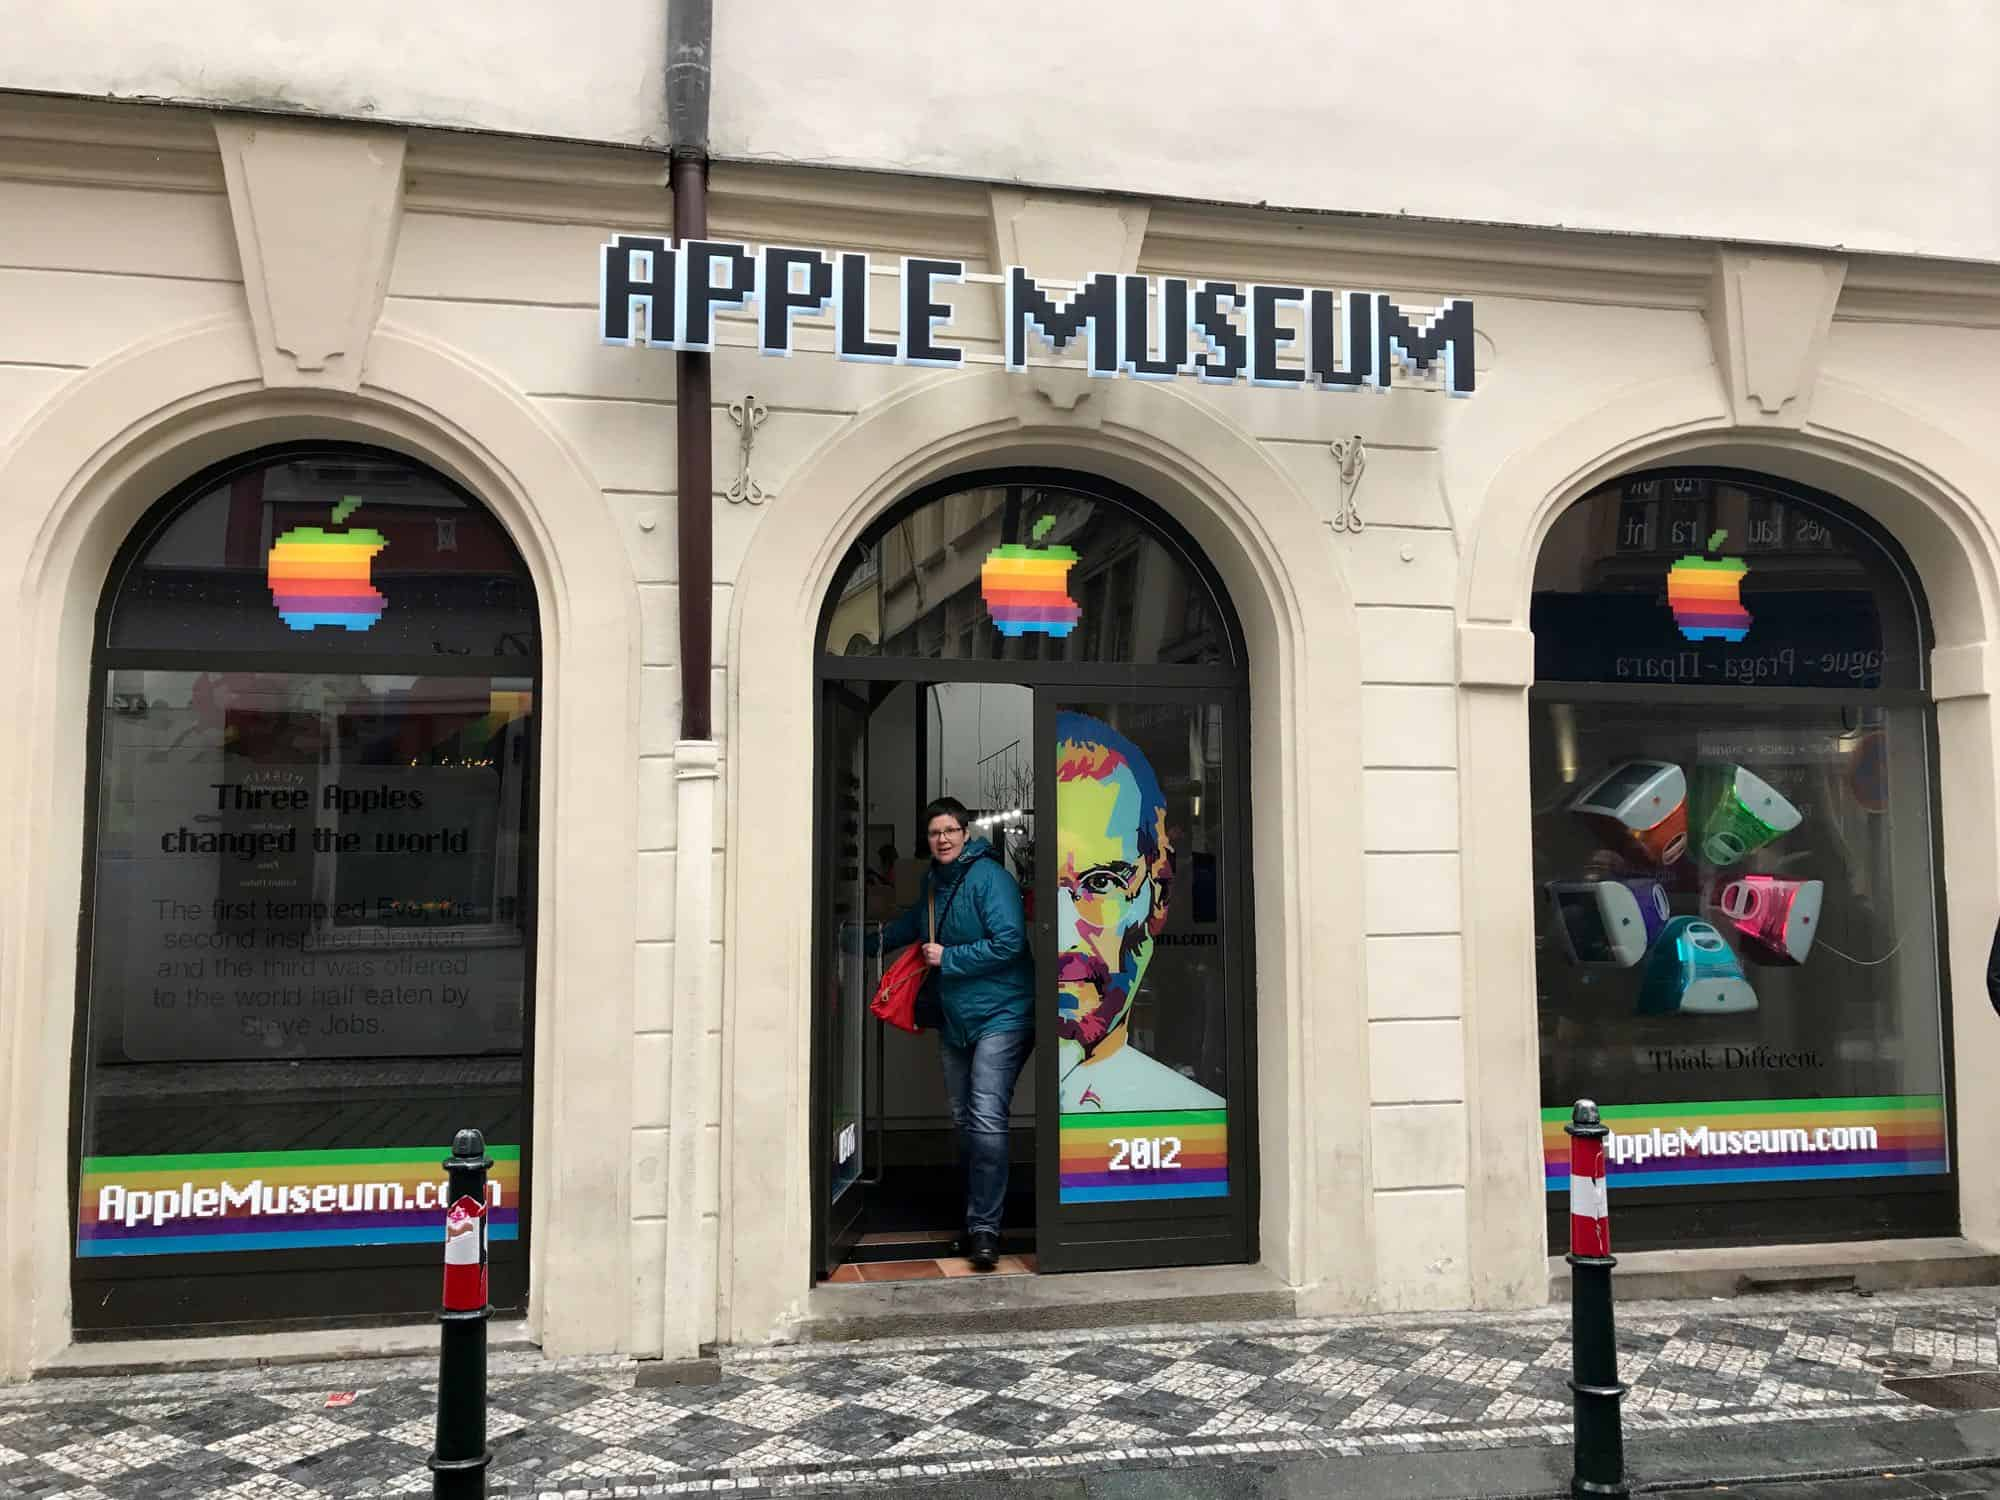 Eingang des Apple Museums in Prag